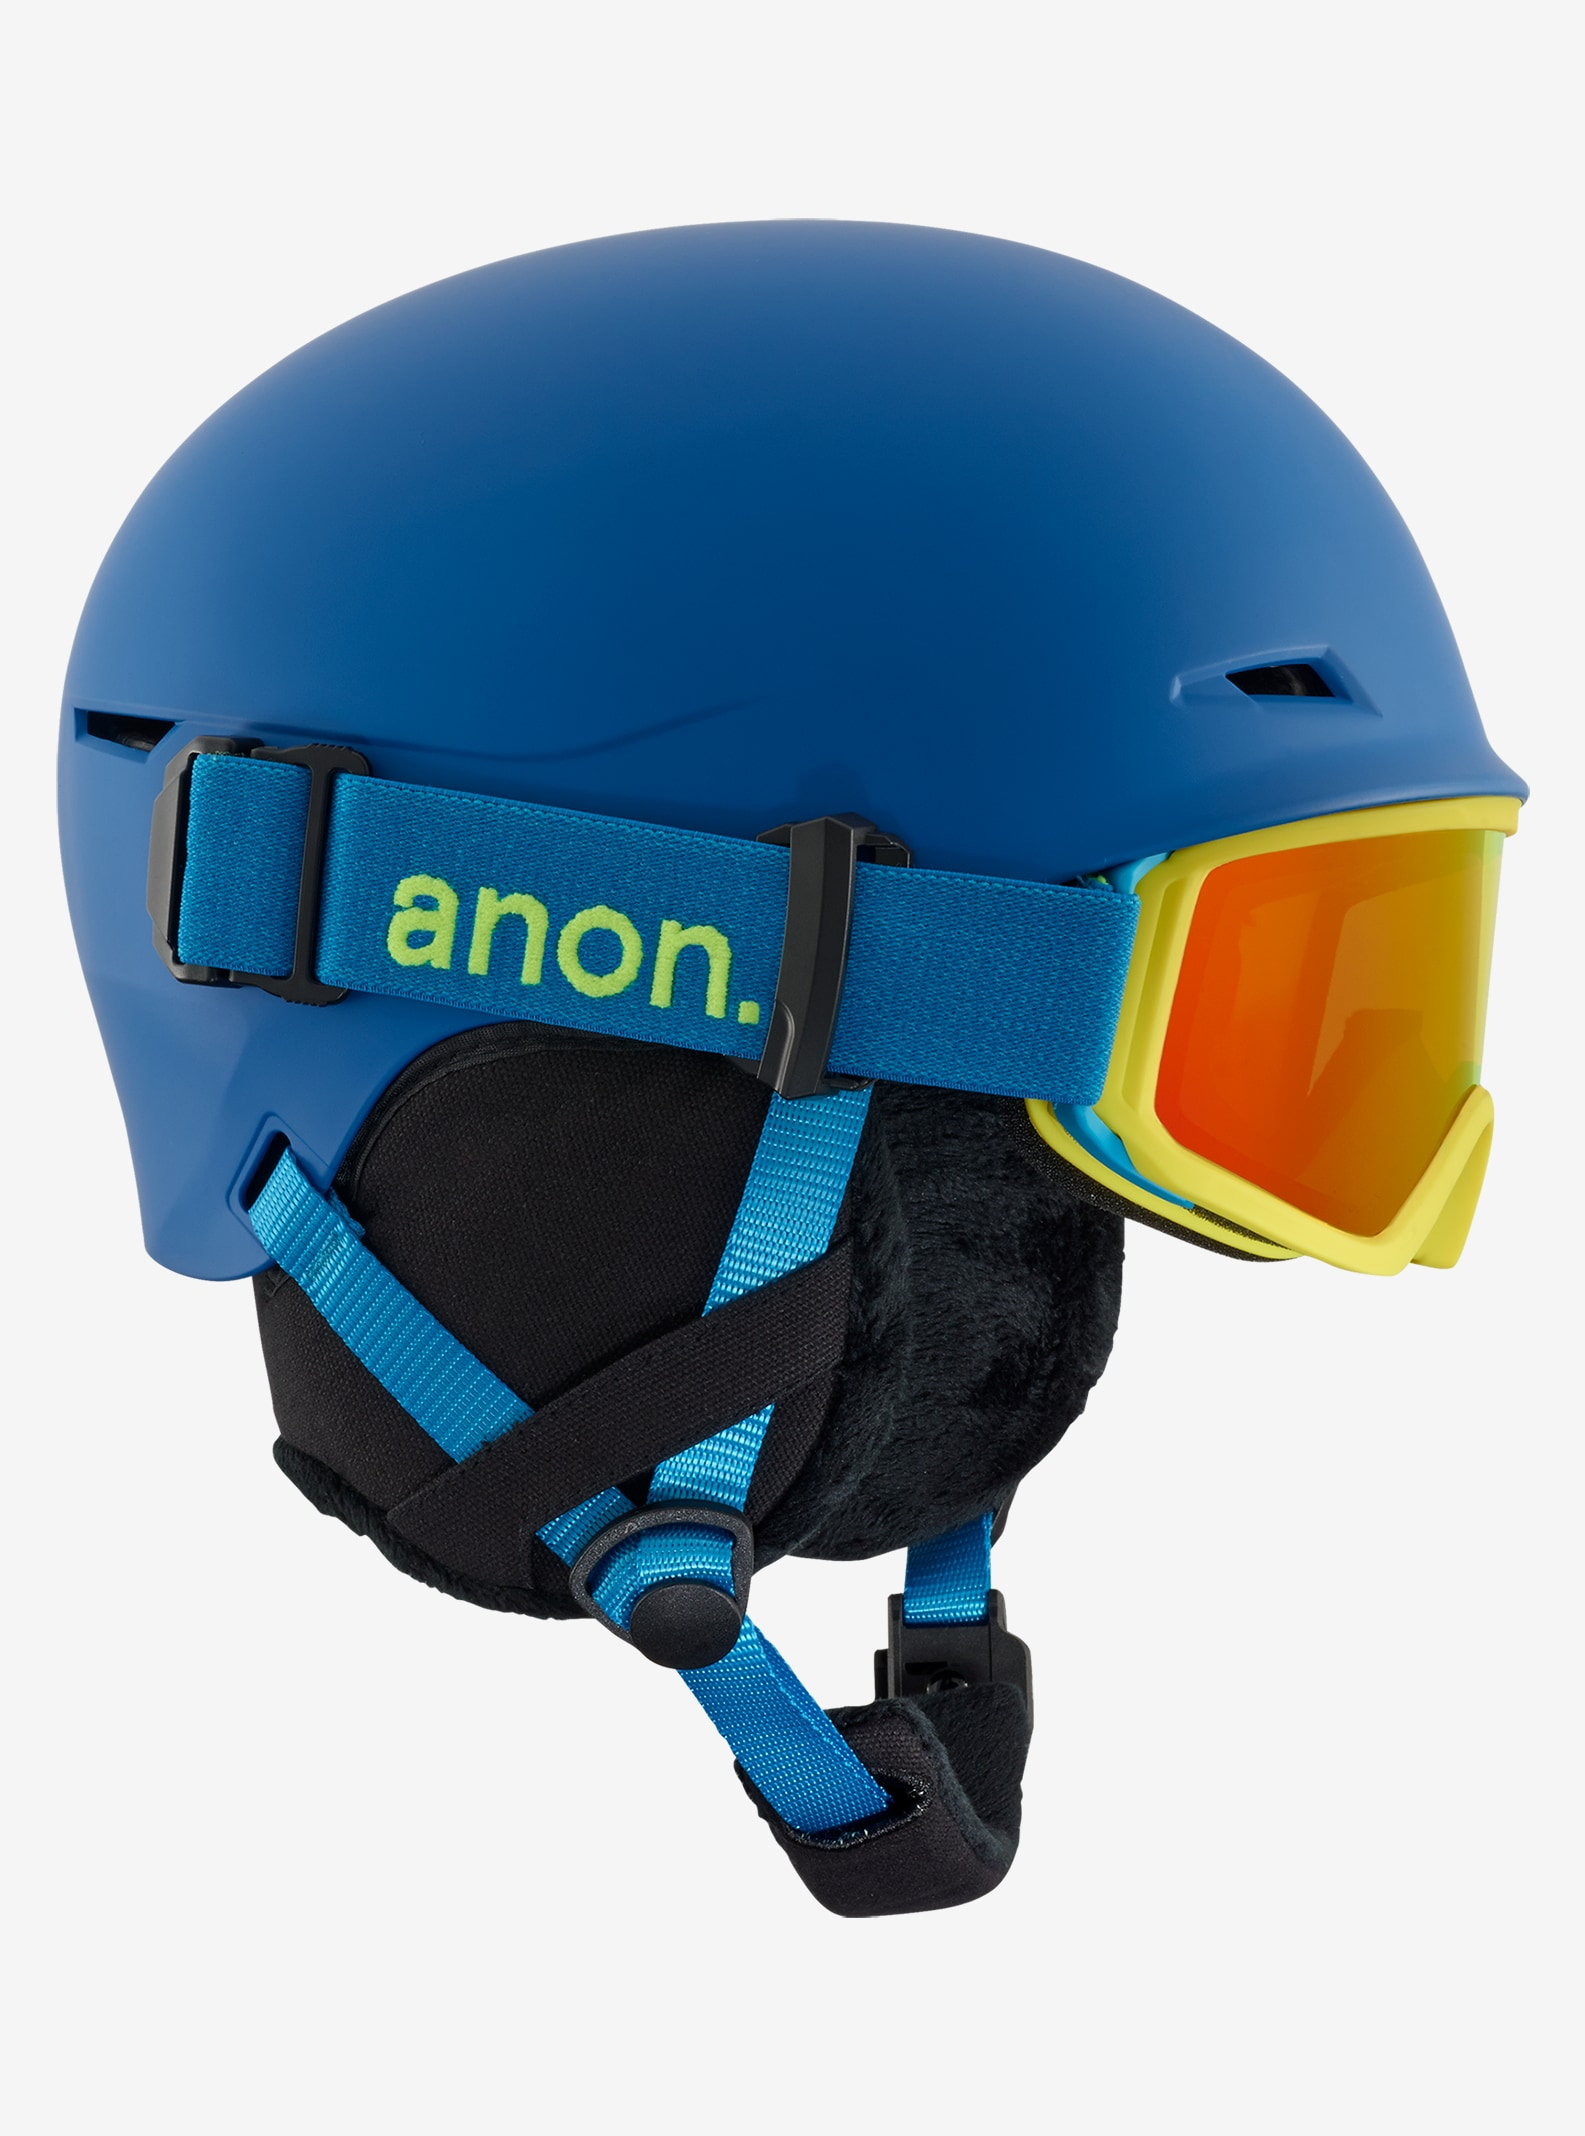 Kids' Anon Define Helmet shown in Artic Blue